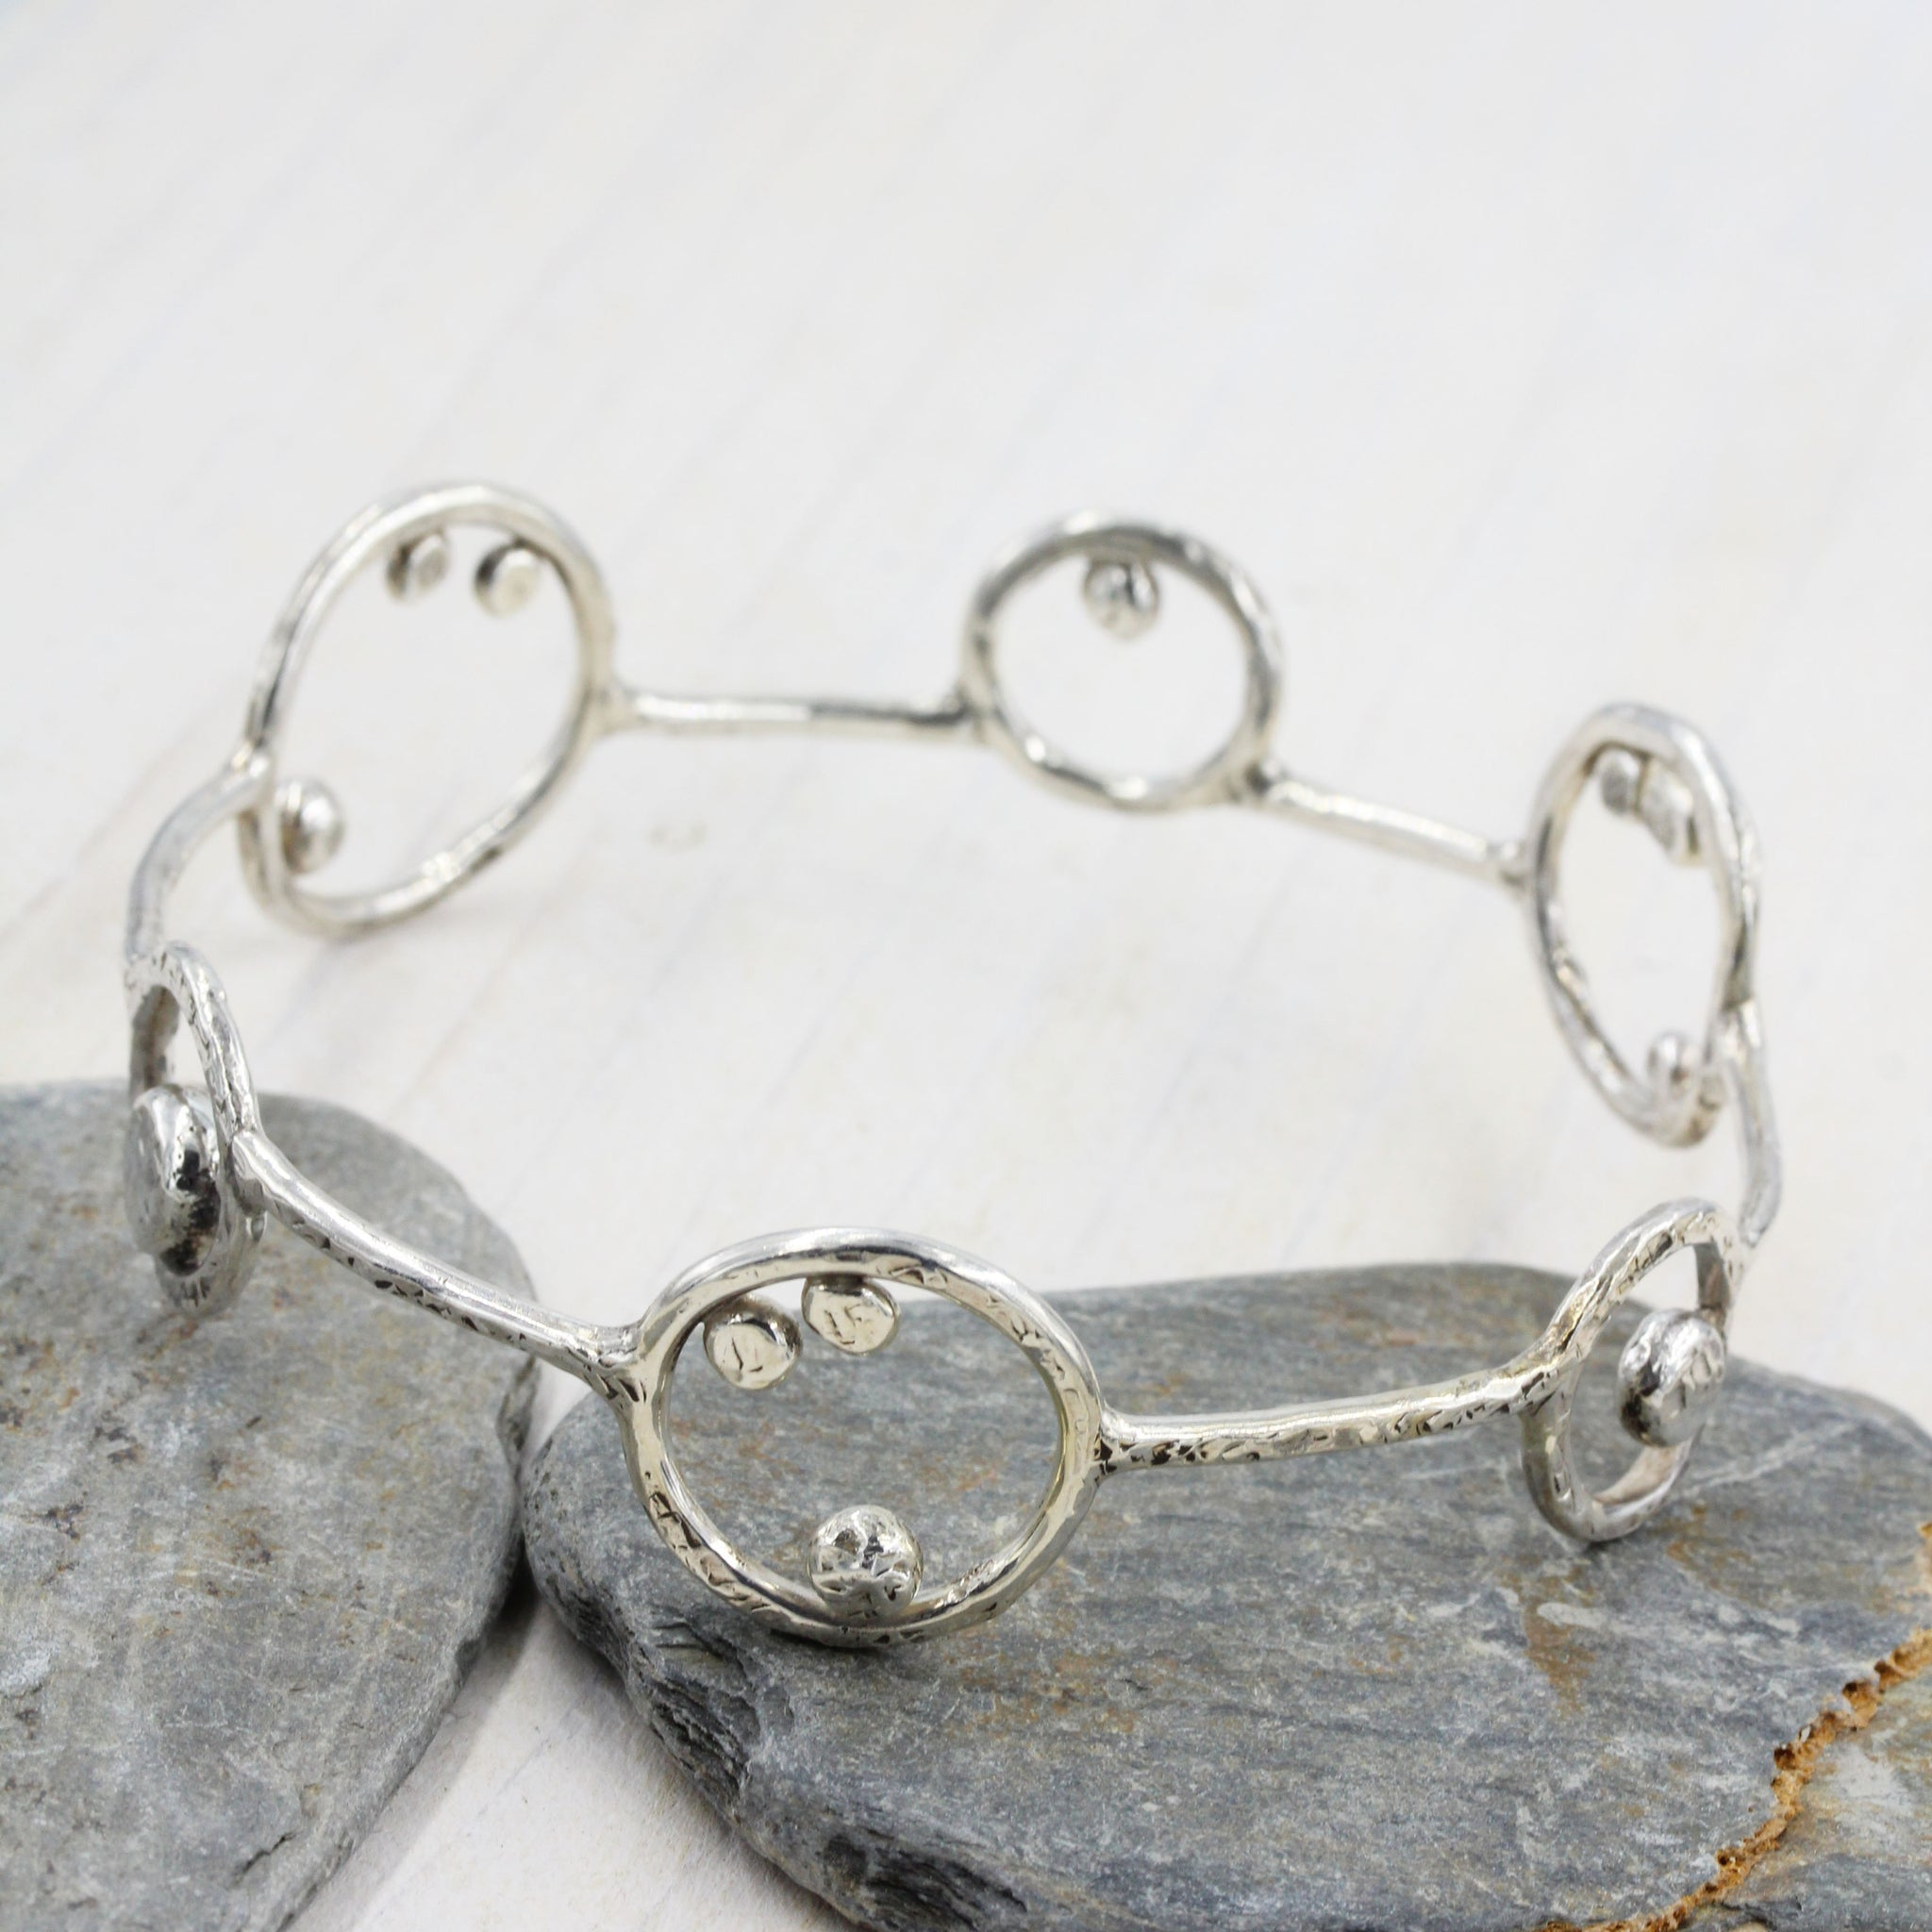 Handmade 'Orbit' Bracelet by Gemma Tremayne Jewellery. Inspired by the solar system.